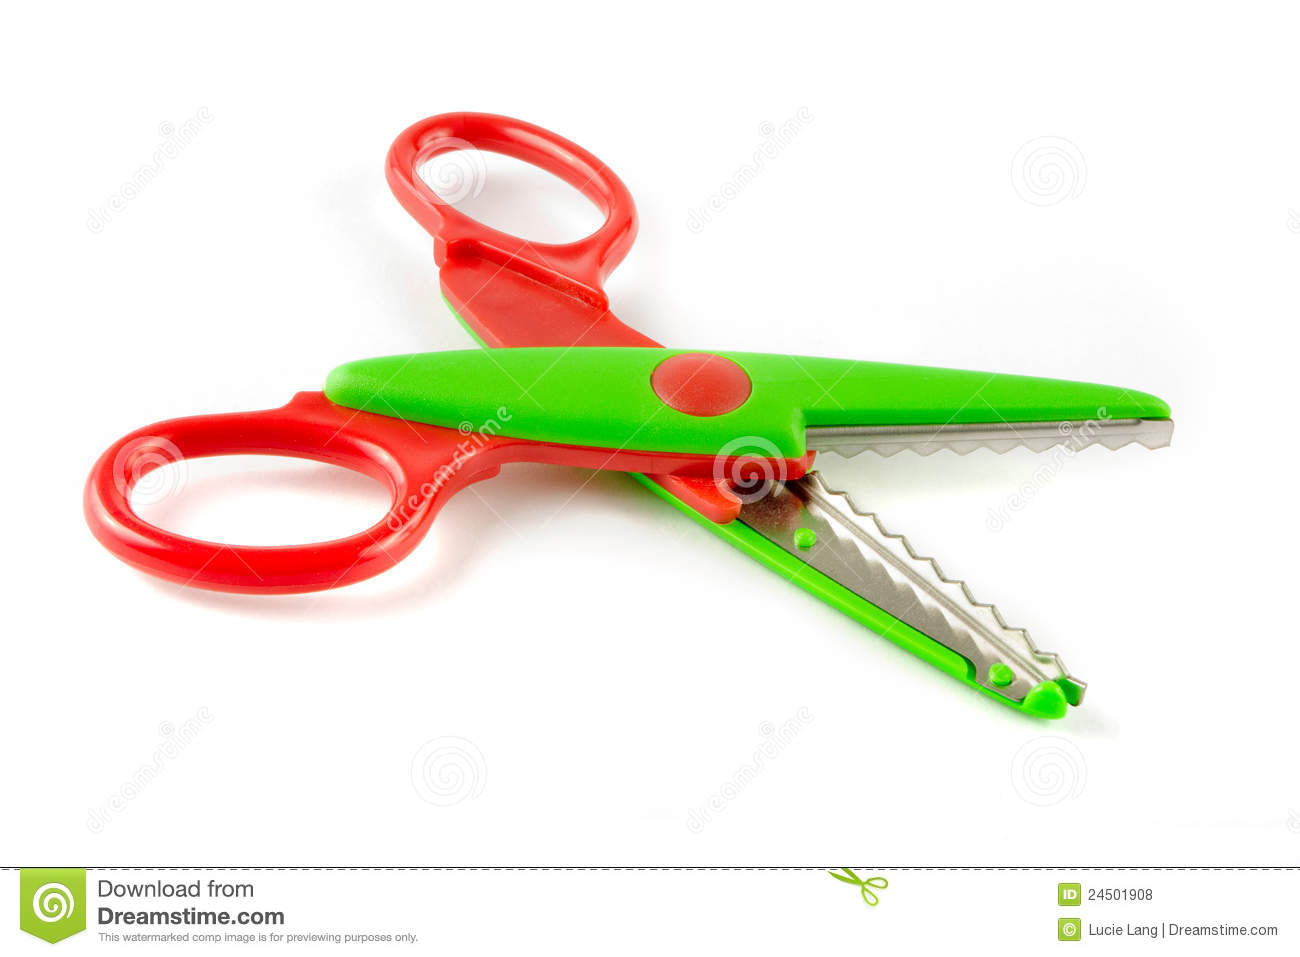 Red and green plastic scissors